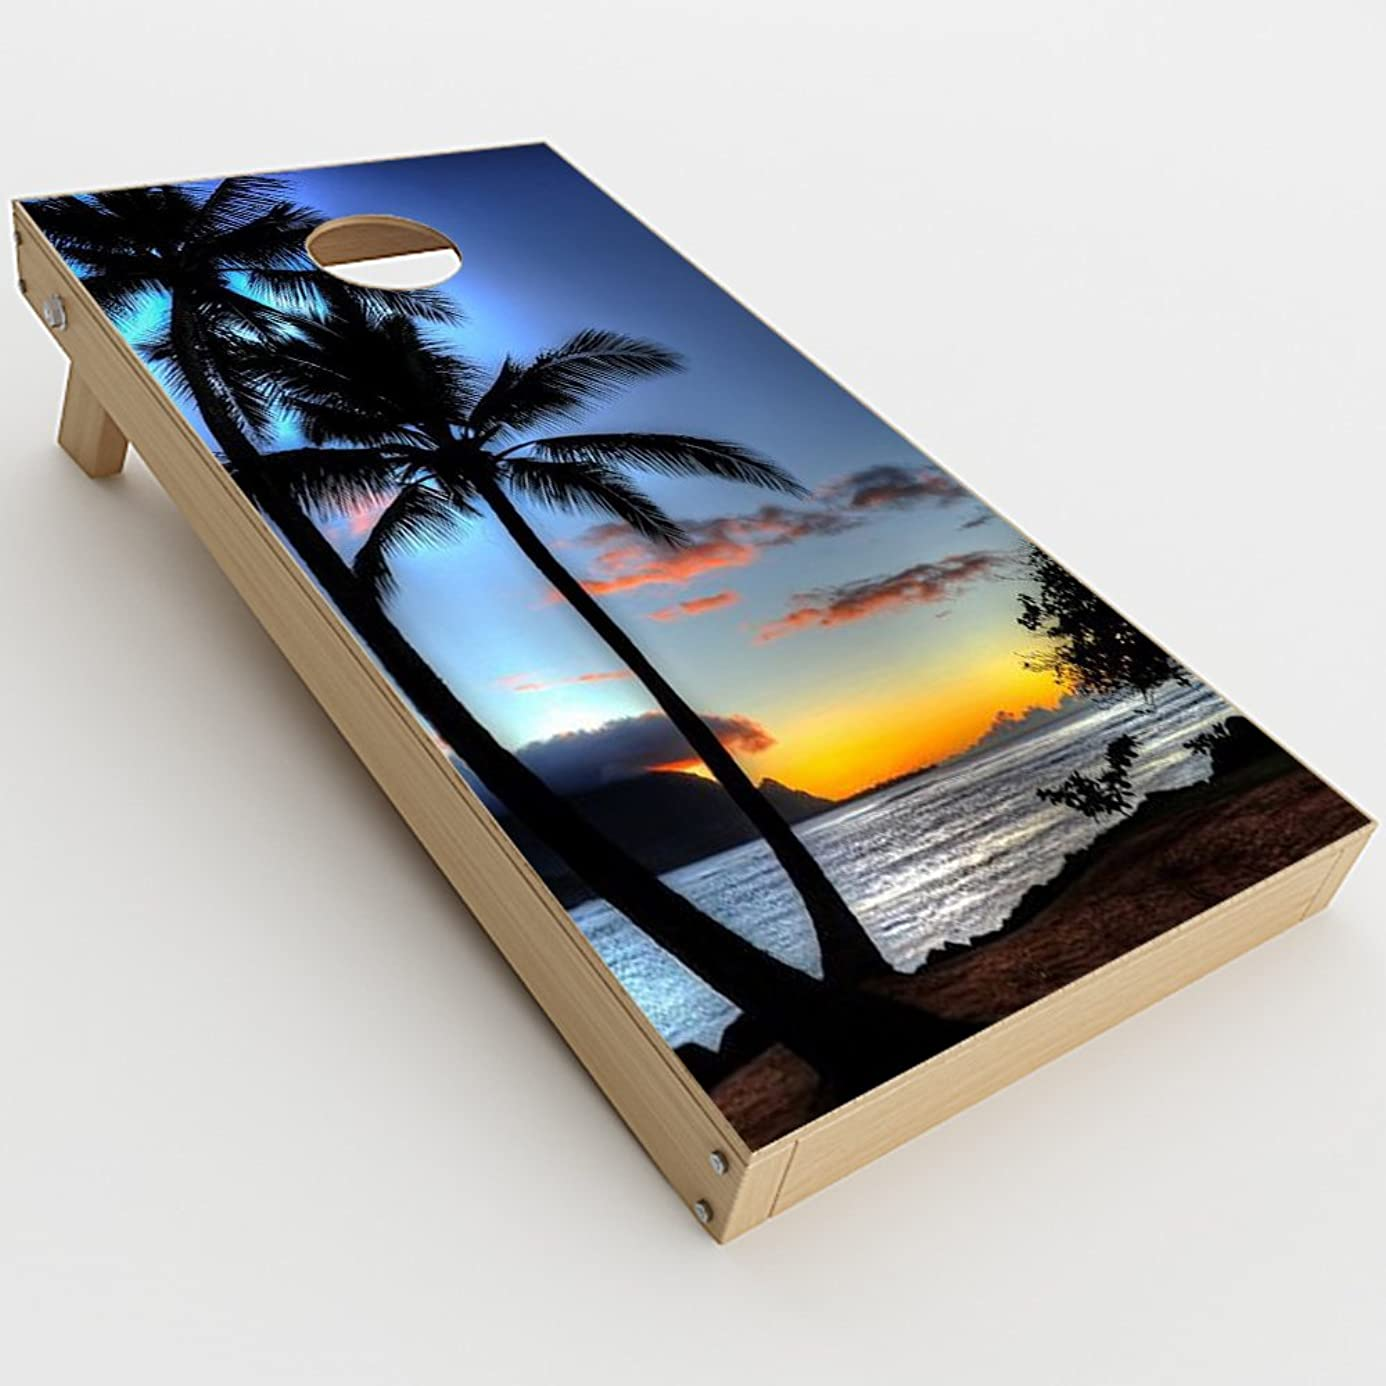 itsaskin Skin Decal Vinyl Wrap for Cornhole Game Board Bag Toss (2xpcs.) Skins Stickers Cover/Paradise Sunset Palm Trees